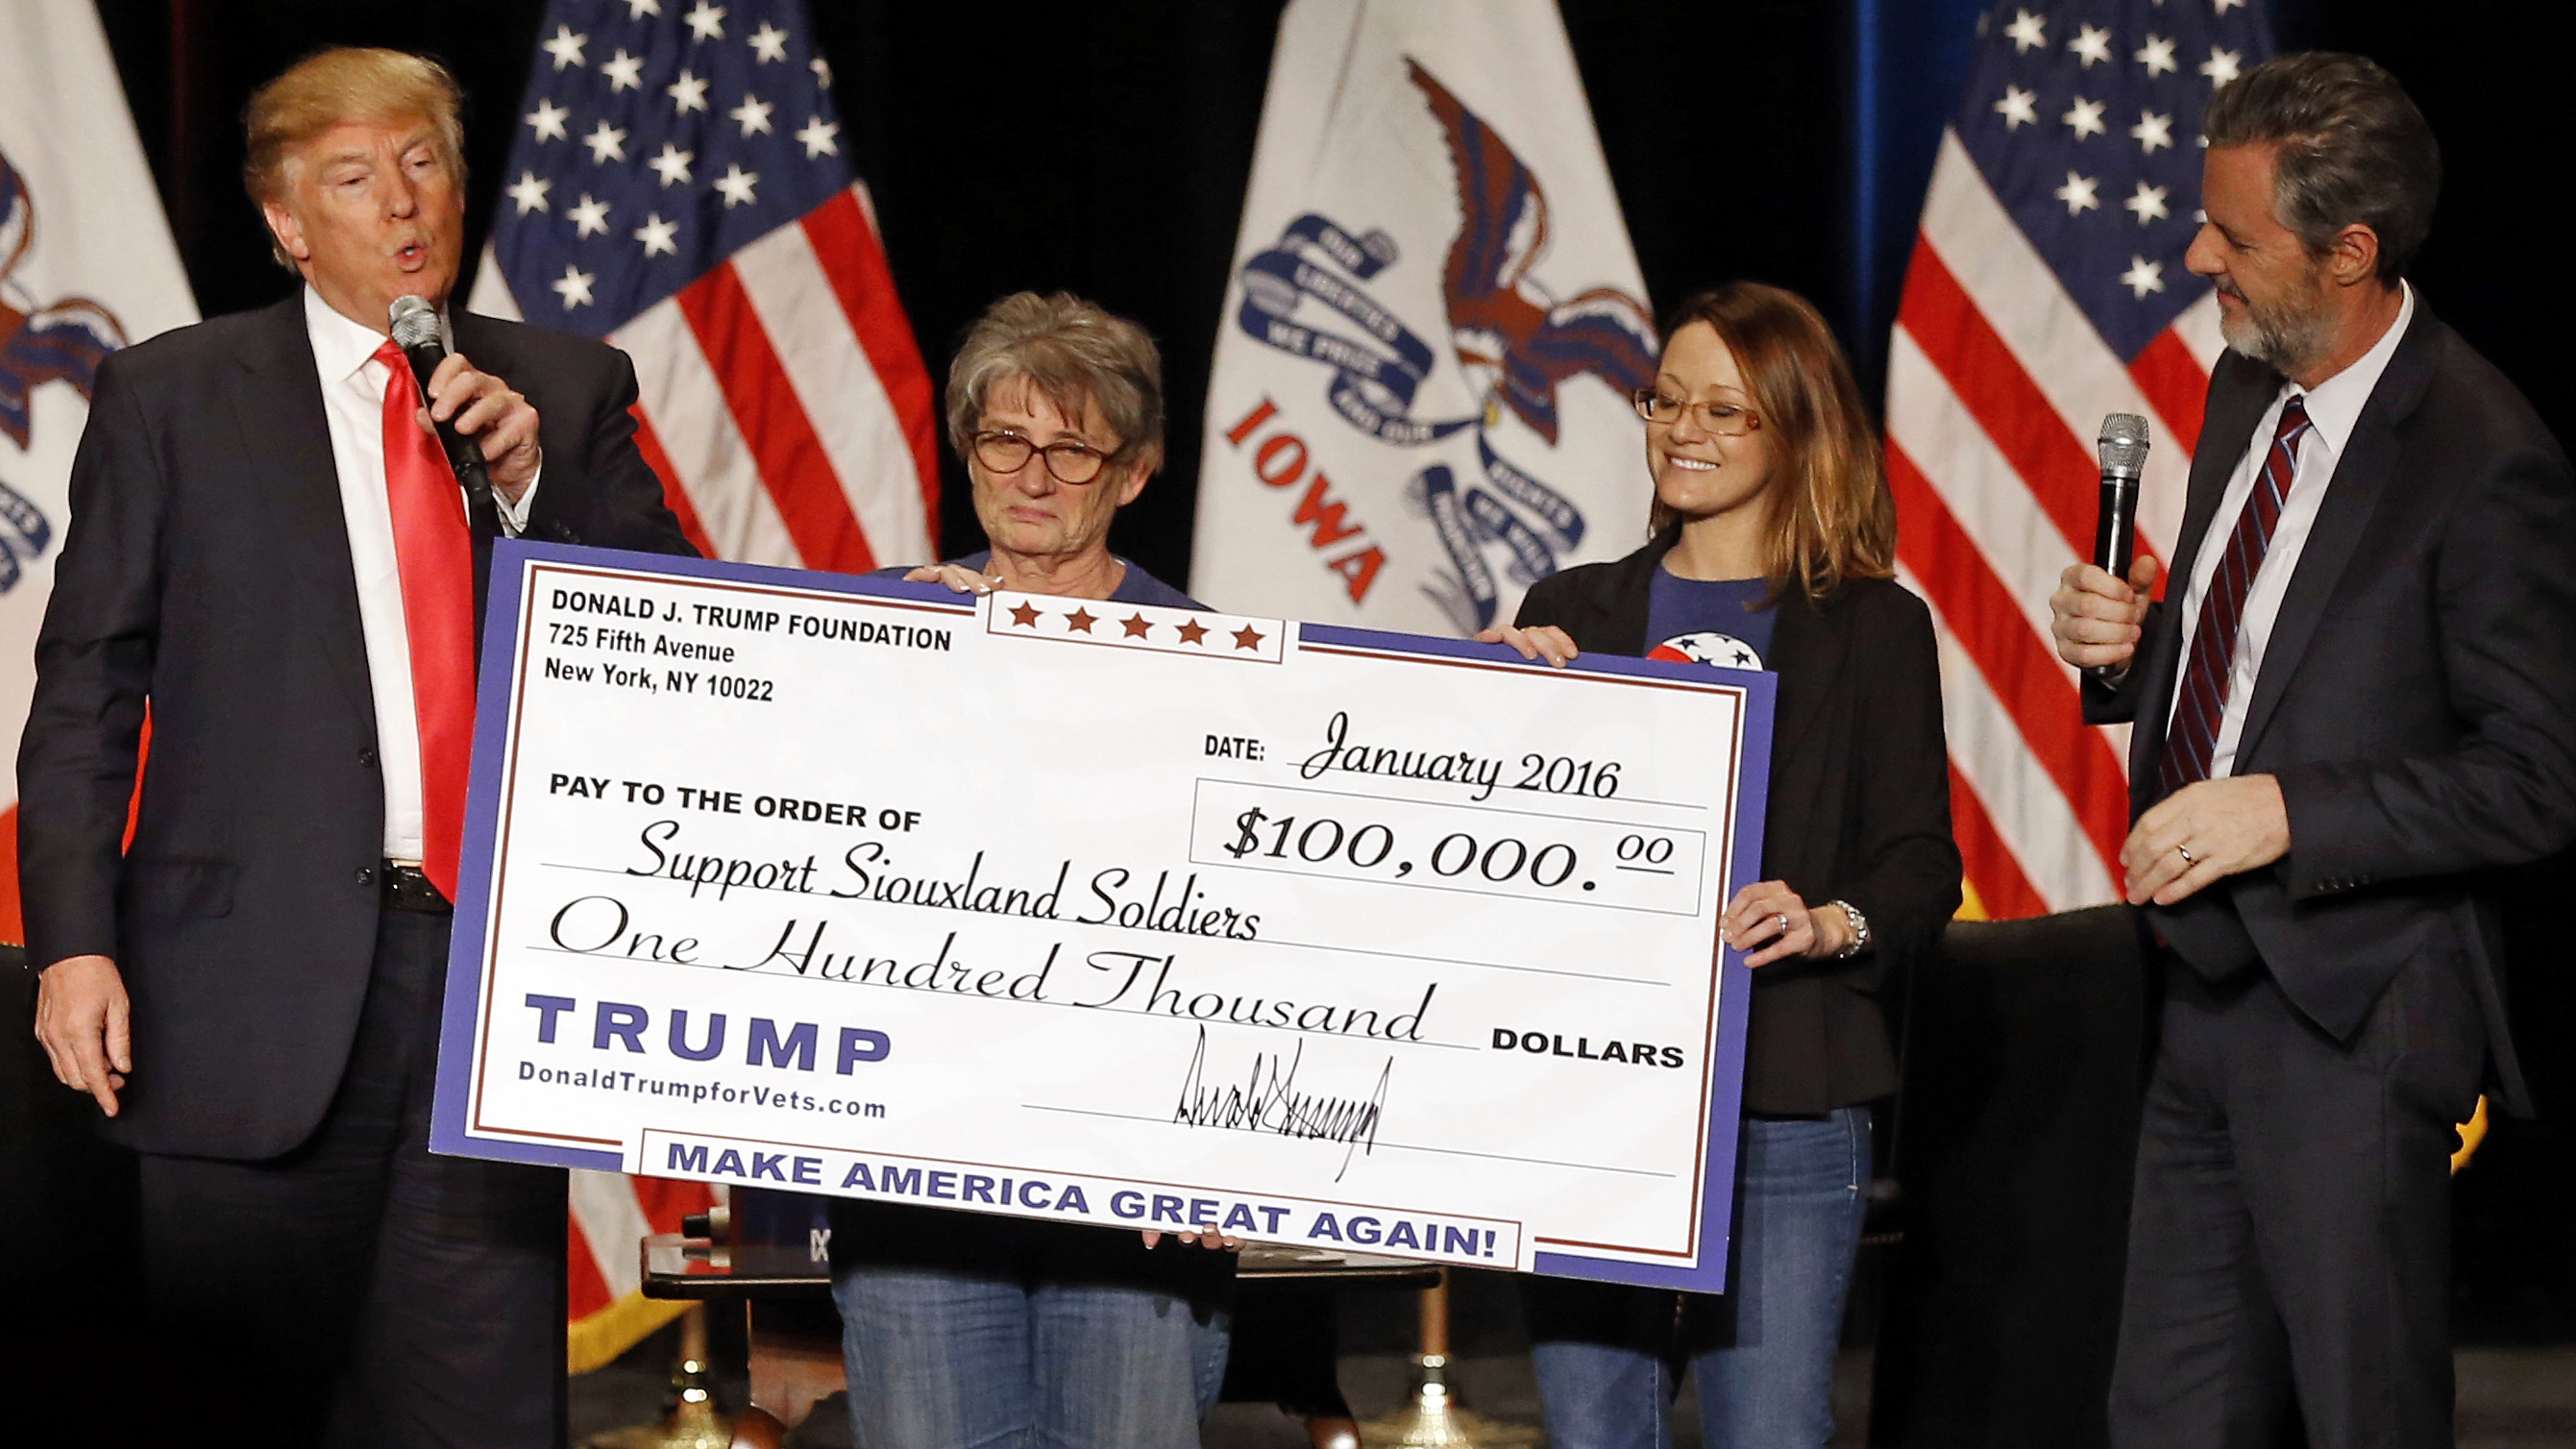 FILE - In this Jan. 31, 2016 file photo, Republican presidential candidate Donald Trump, left, presents a check to members of Support Siouxland Soldiers during a campaign event at the Orpheum Theatre in Sioux City, Iowa. Under pressure to account for money he claimed to raise for veterans, an angry and irritated Donald Trump listed charities Tuesday, May 31, 2016, he says have now received millions of dollars from a fundraiser he held in January. Also pictured is Jerry Falwell, Jr., right, president of Liberty University